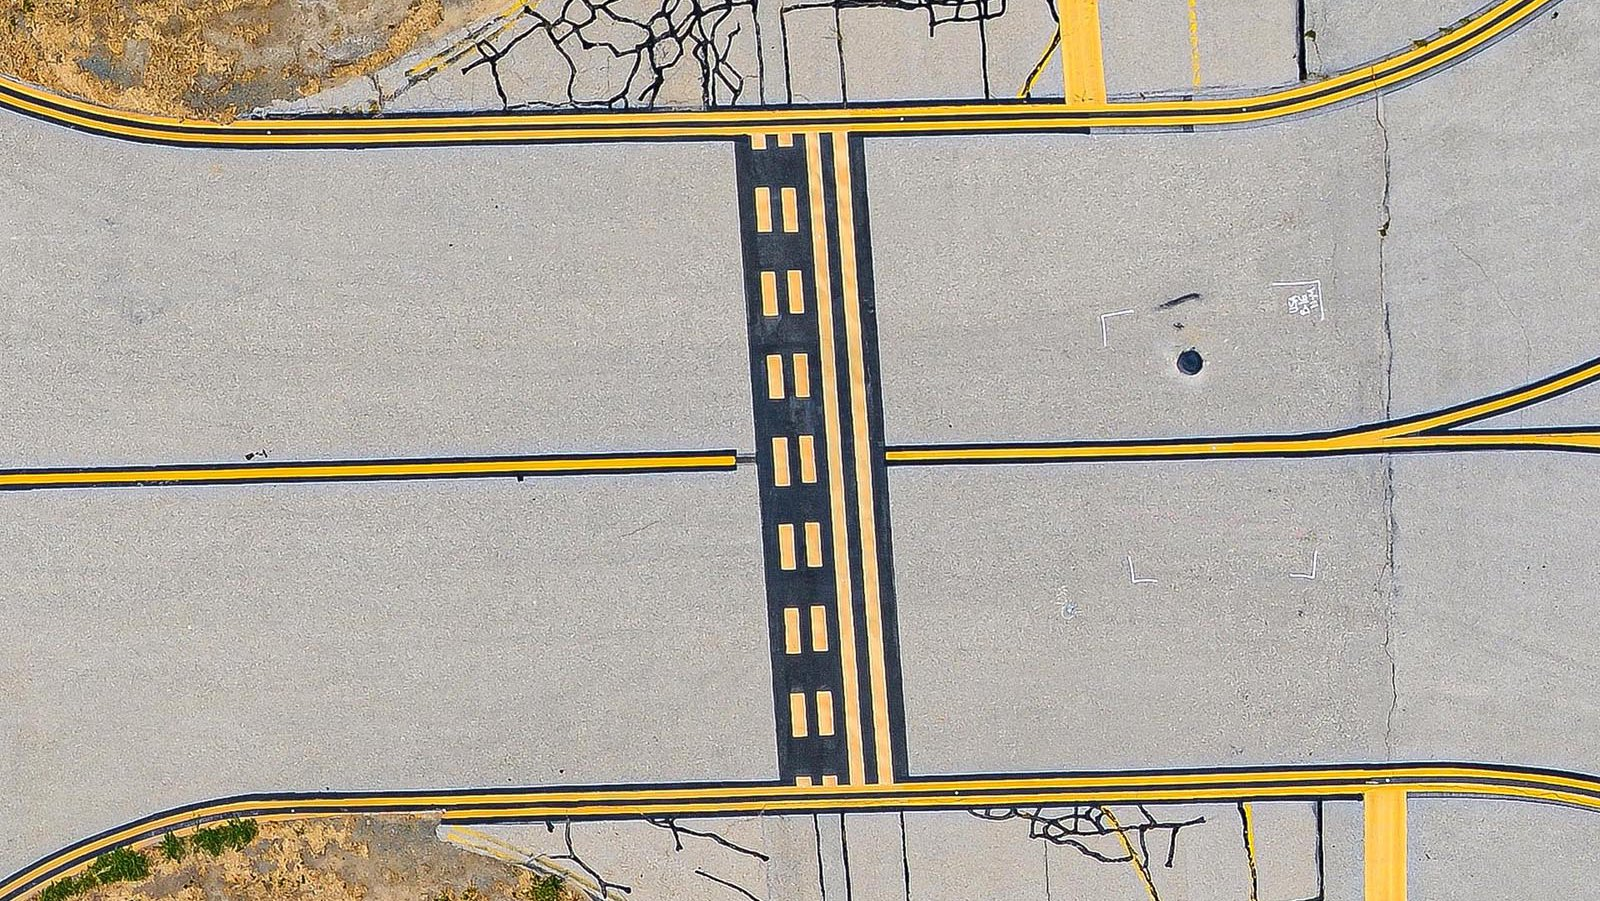 Mapping high-resolution orthophoto screen capture of Van Nuys Airport (KVNY) in Van Nuys, California